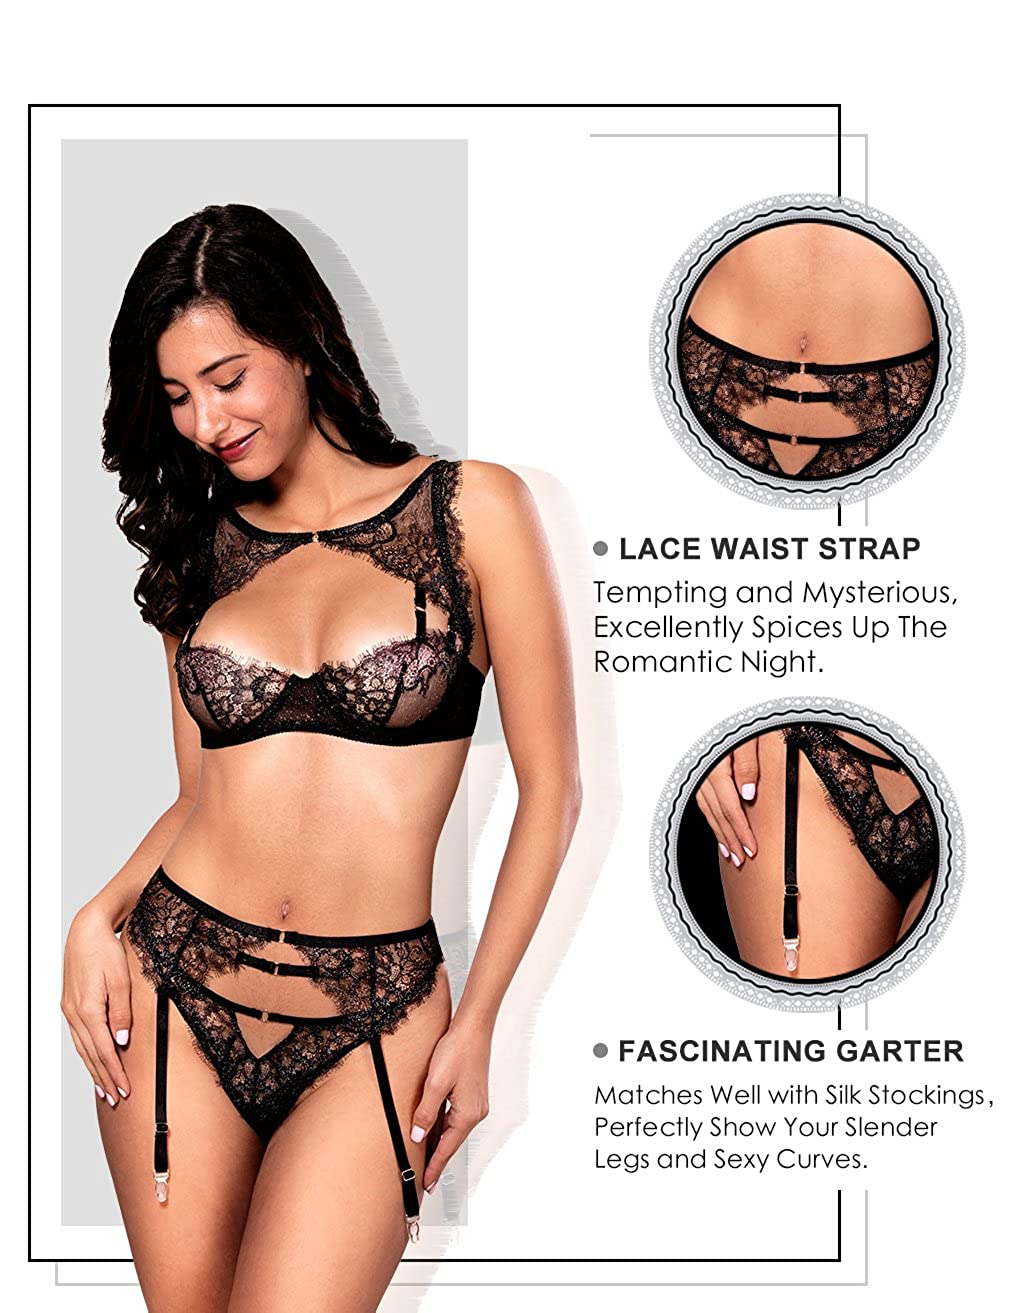 19792786e36c2 Amazon.com: Women Sexy Lace Lingerie Set, Lace Push Up Bra and G-String  Panty with Garter Belt 3 Piece Lingerie Set: Clothing